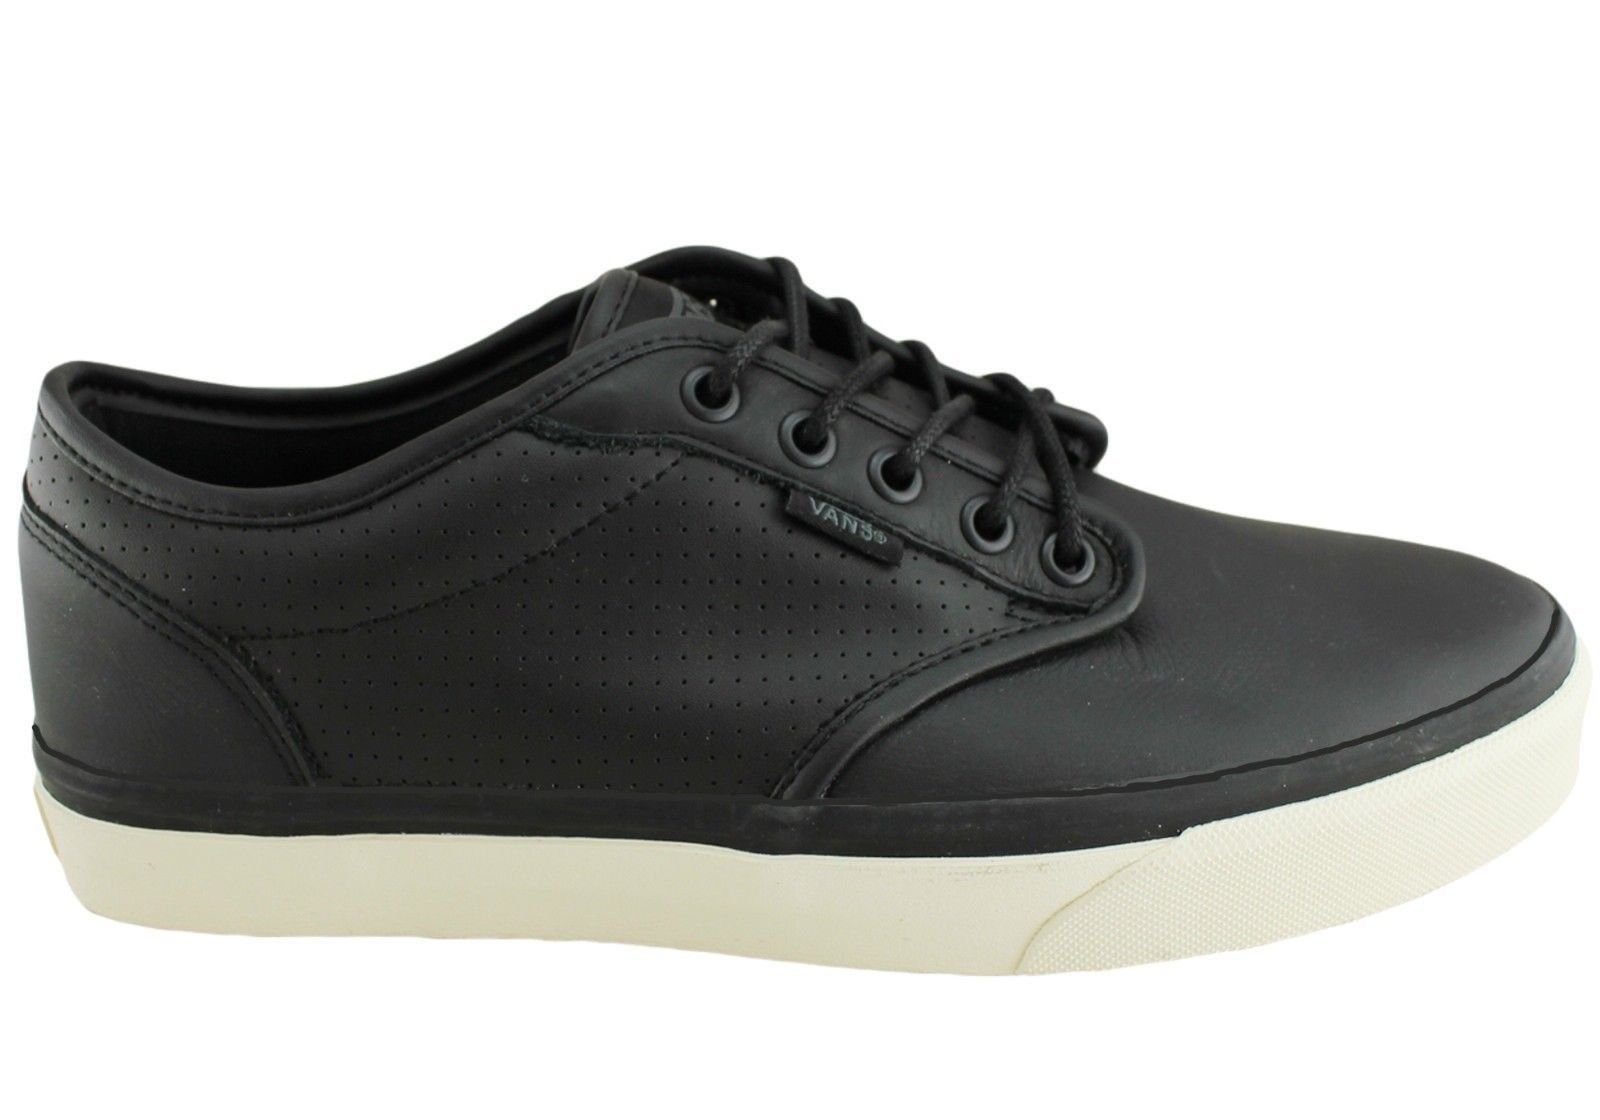 Primary image for VANS Atwood (Perf) Black/Antique Leather Skate Shoes Men's 6.5 Women's 8